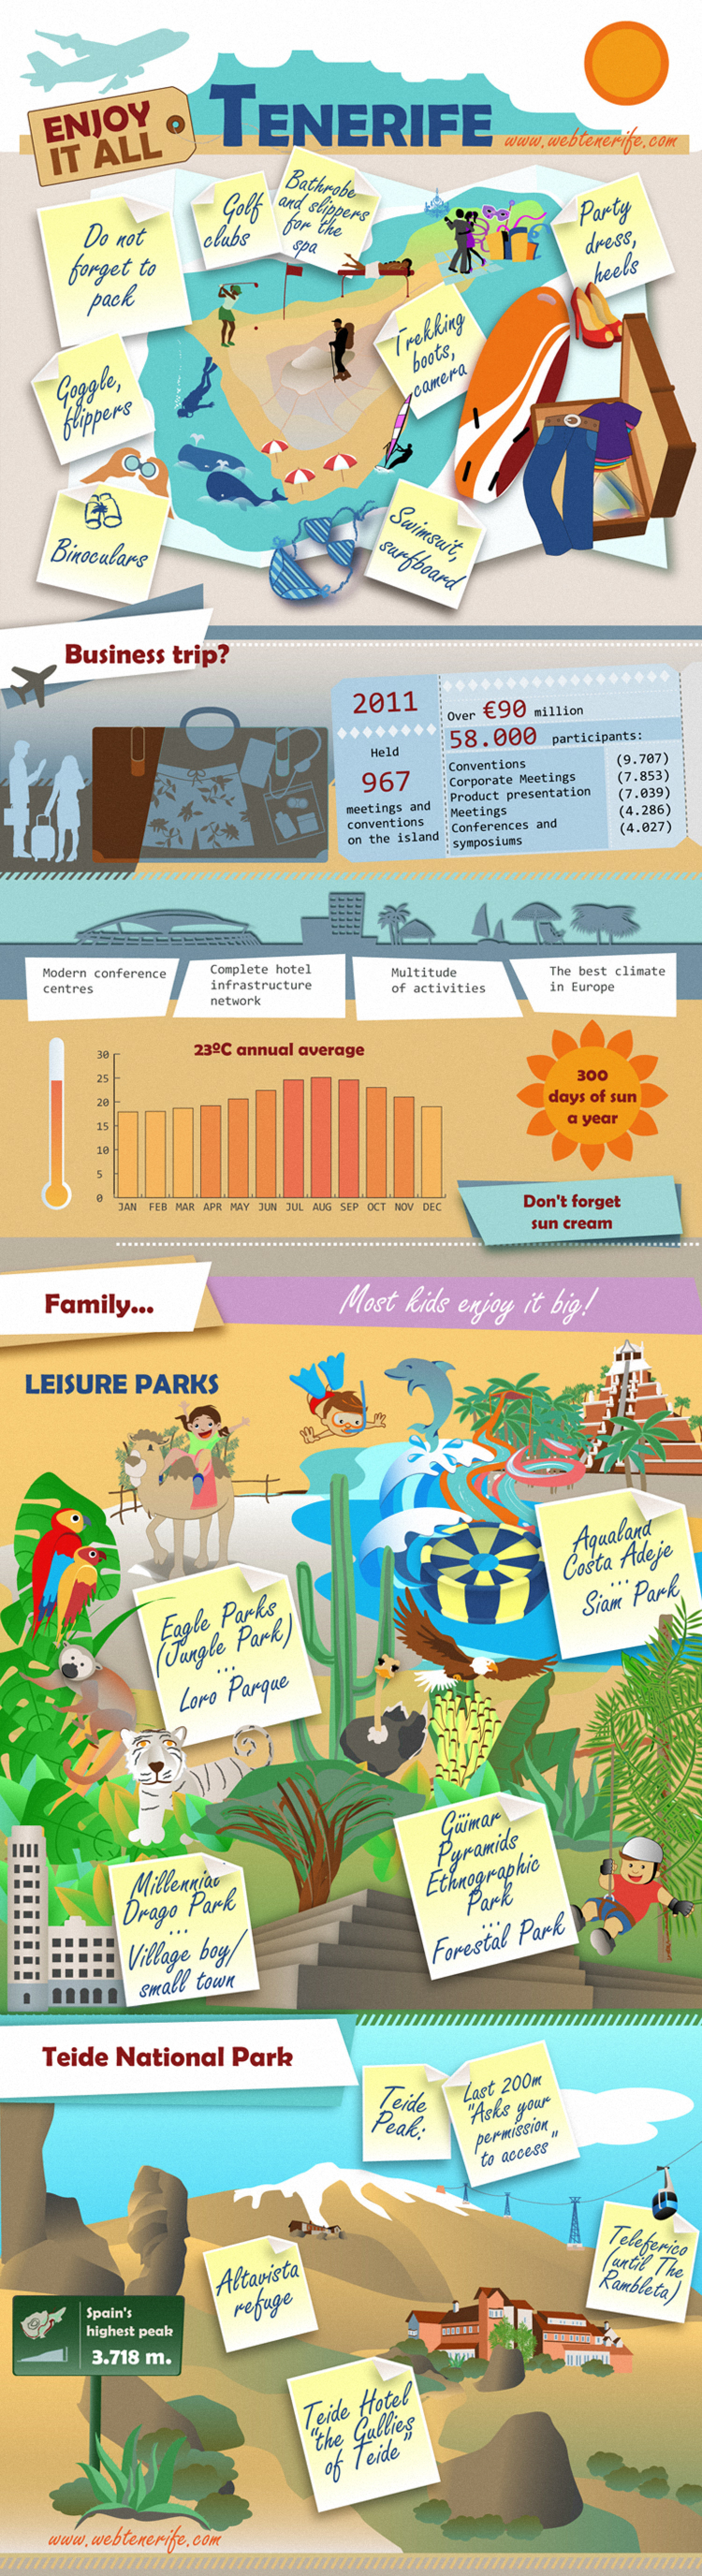 How to enjoy your holiday Infographic